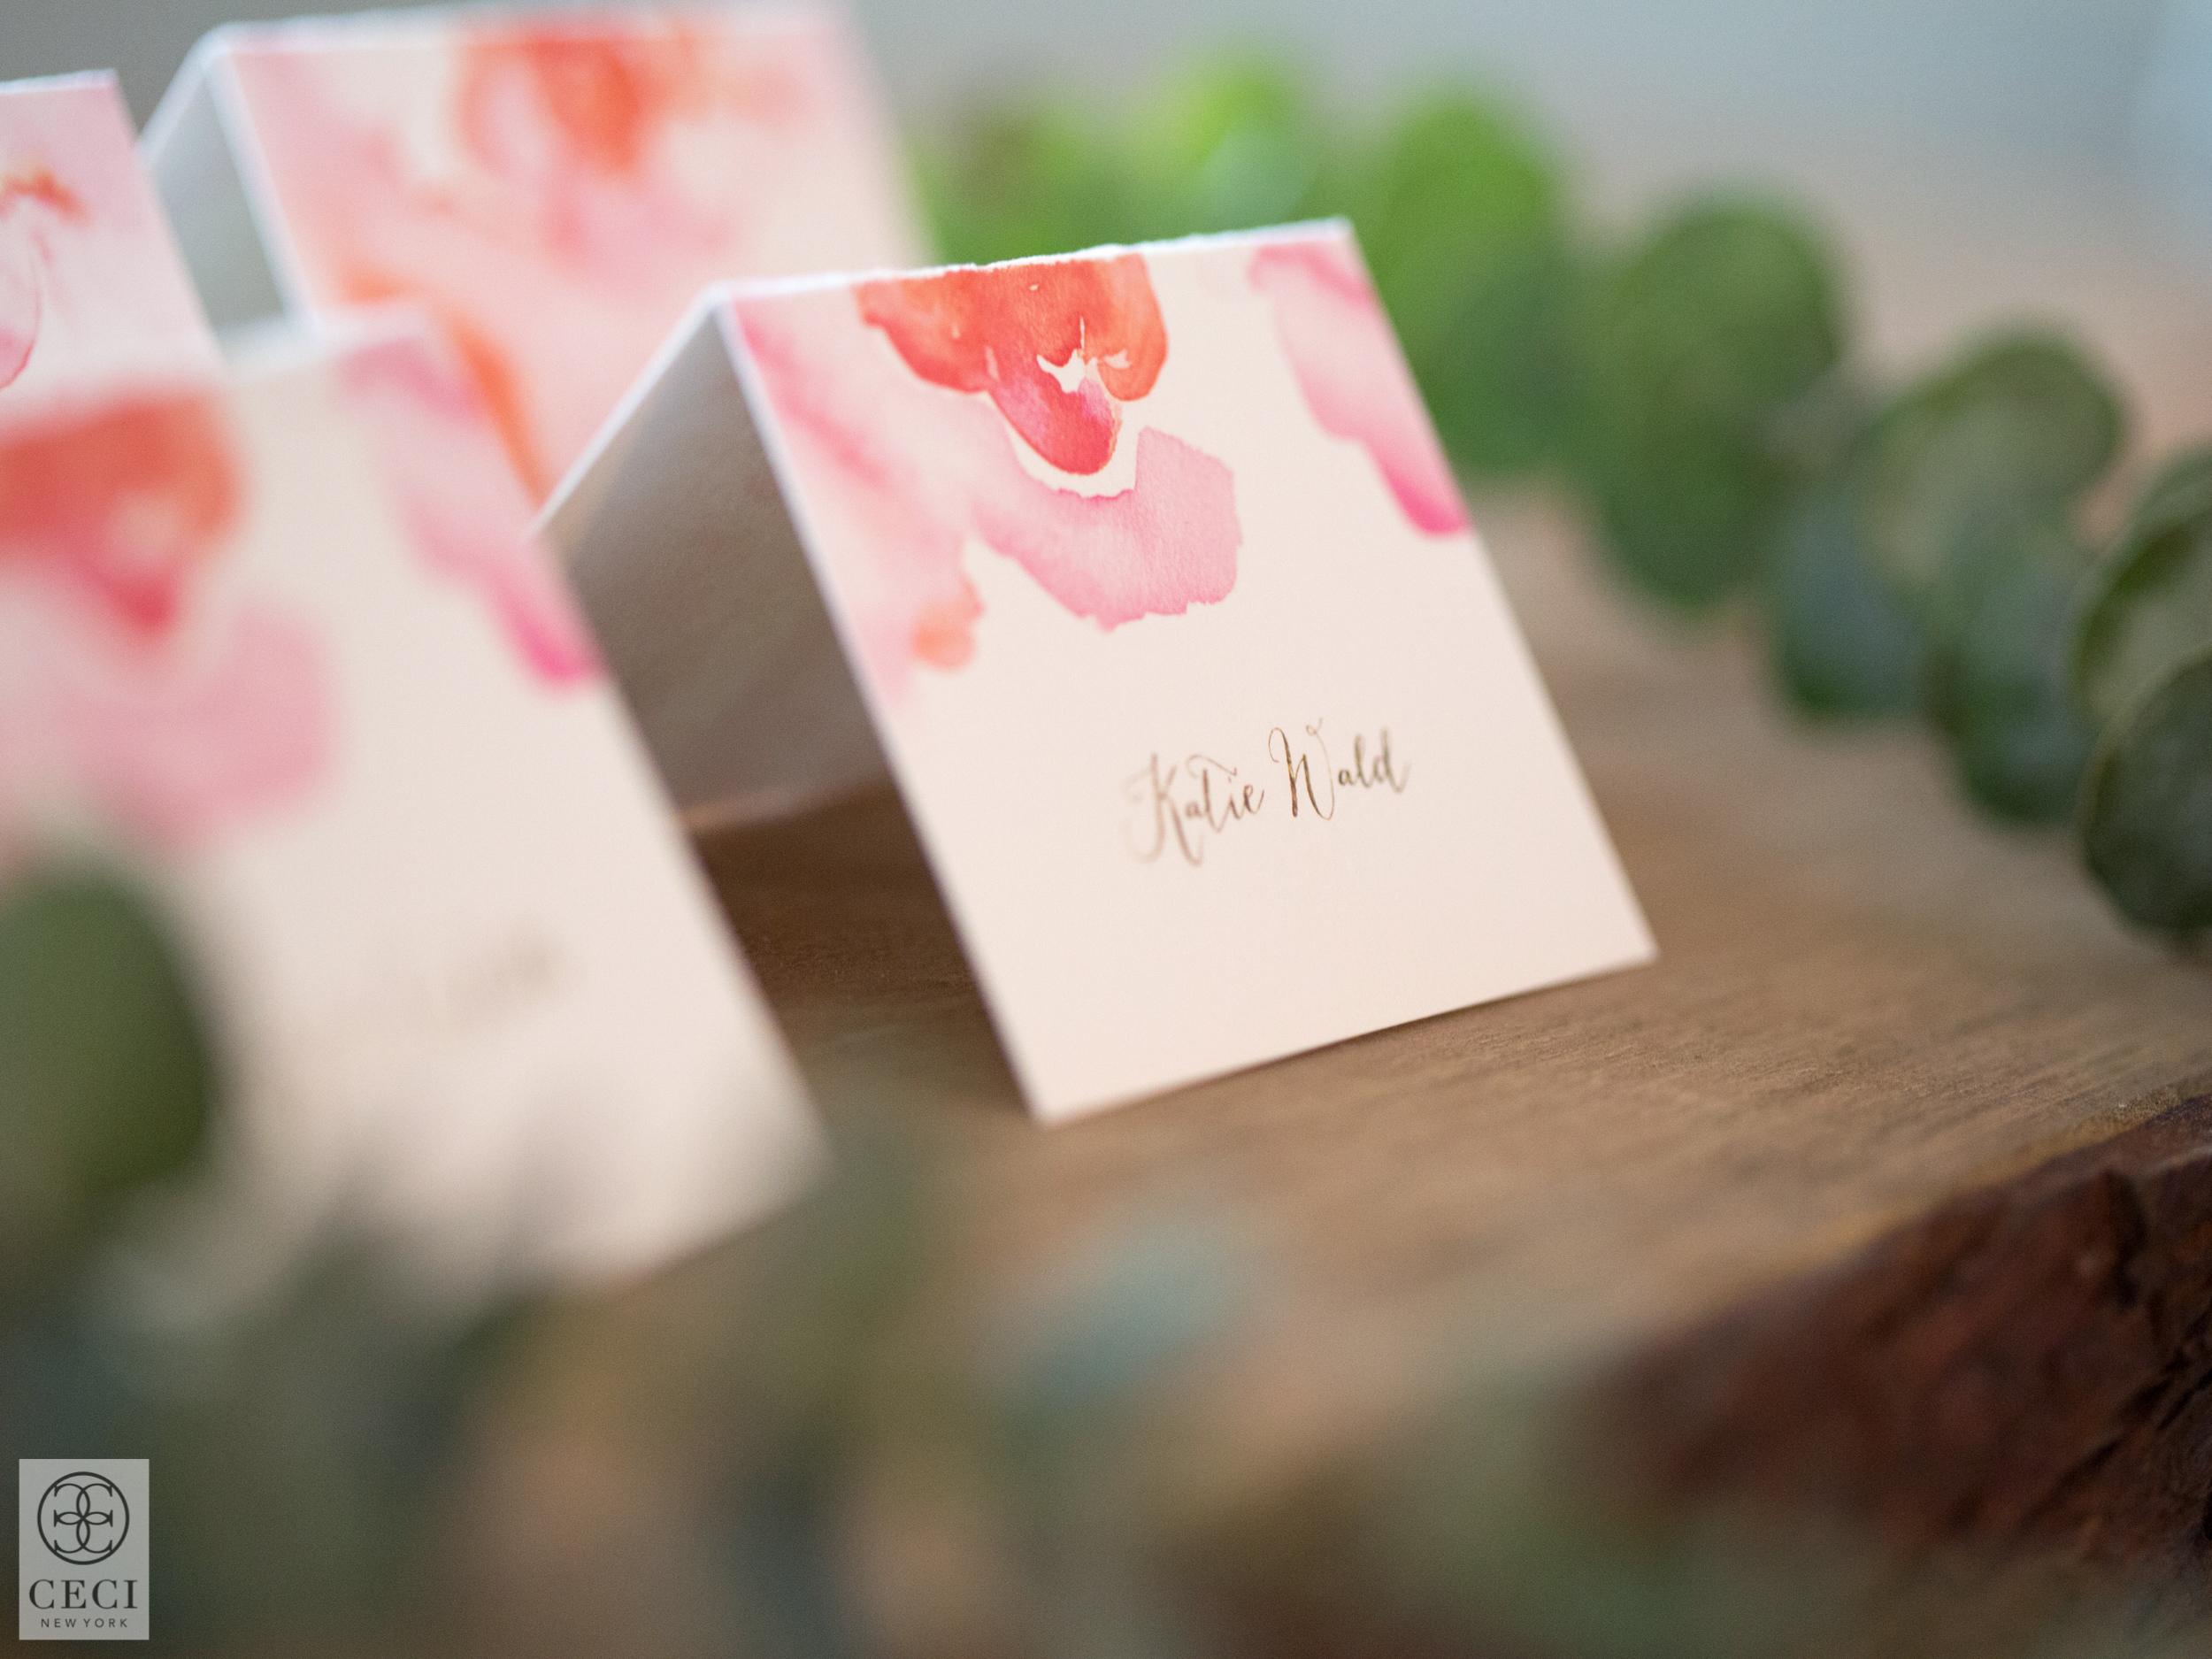 Ceci_New_York_Ceci_Style_Ceci_Johnson_Luxury_Lifestyle_Wedding_Floral_Sara_Kauss_Lucky_Sun_Ranch_Watercolor_Hand_Painted_Inspiration_Design_Custom_Couture_Personalized_Invitations_-12.jpg